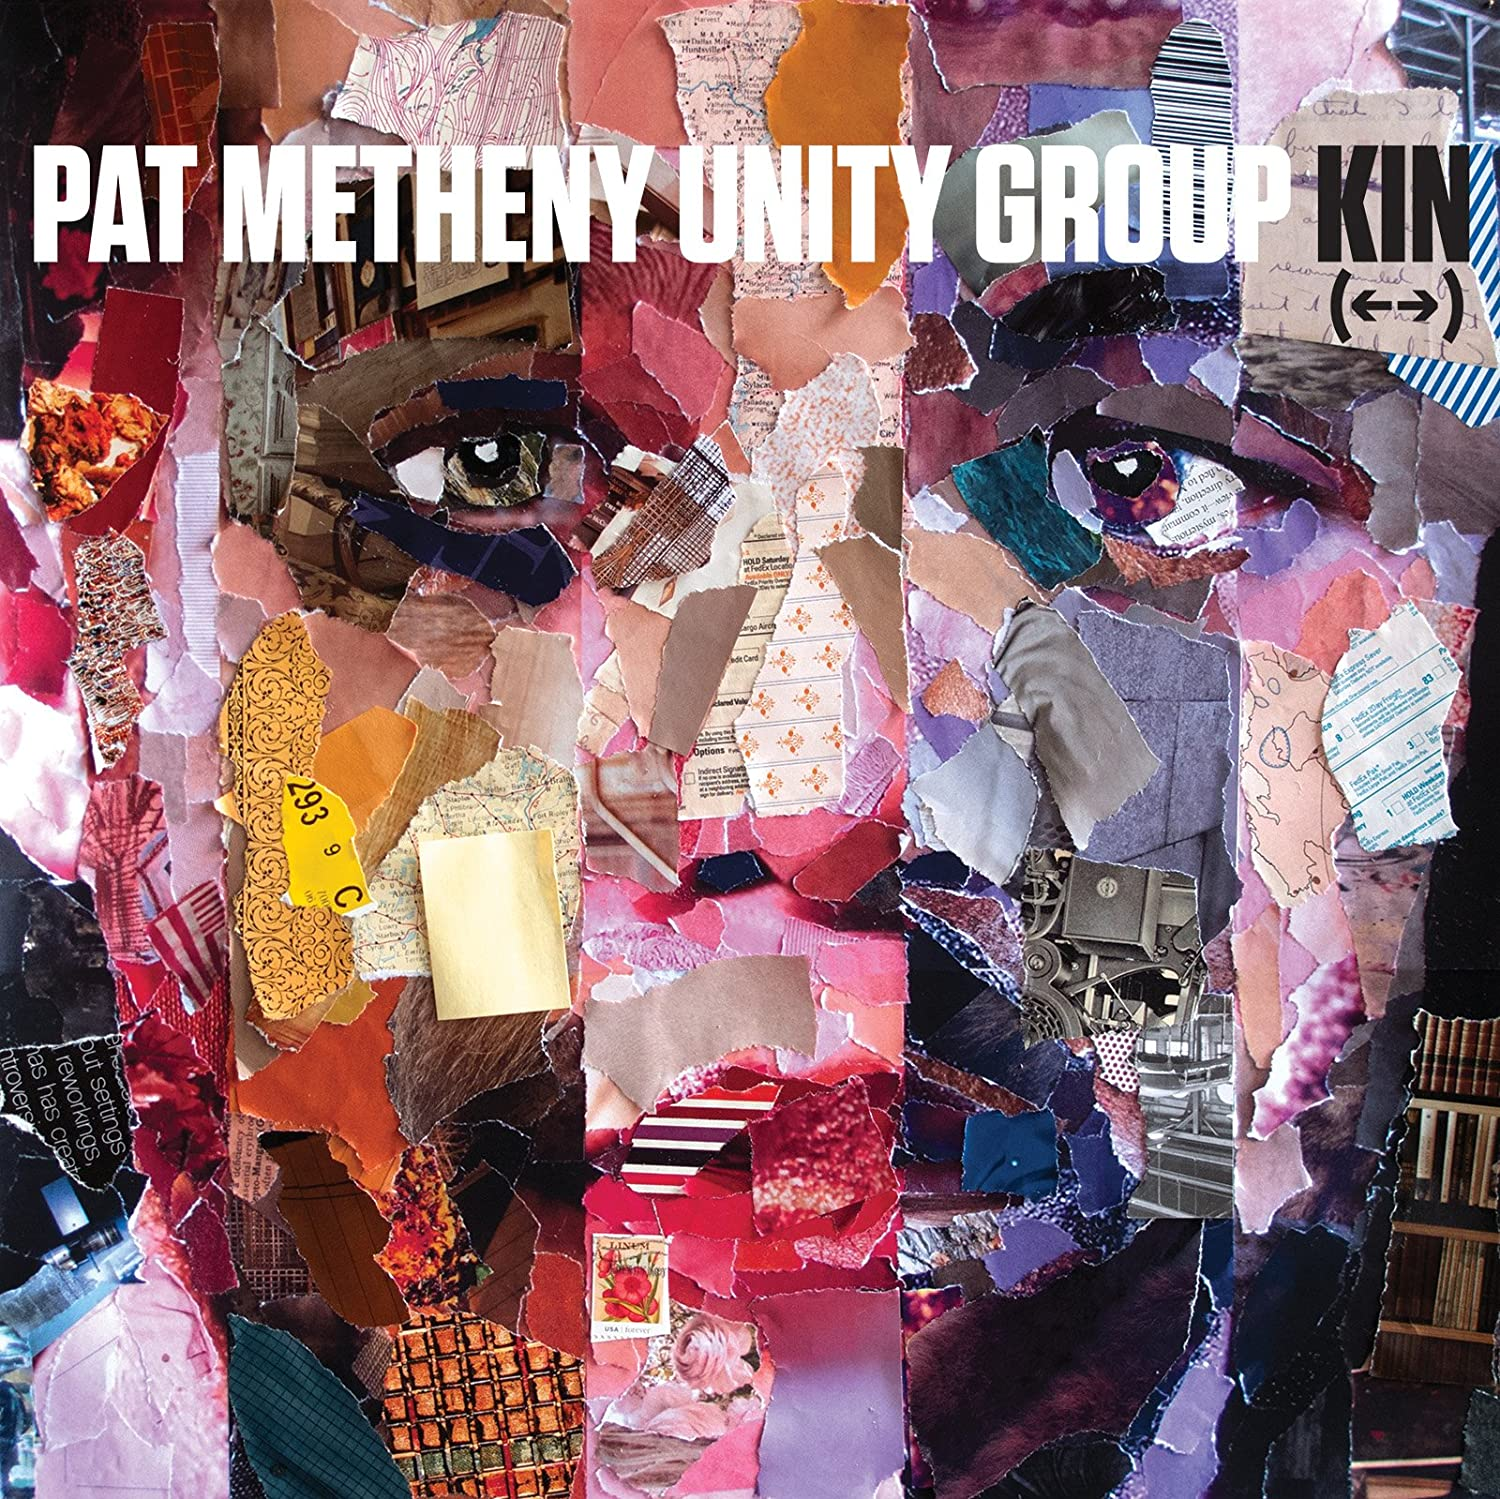 Pat Metheny - Kin cover